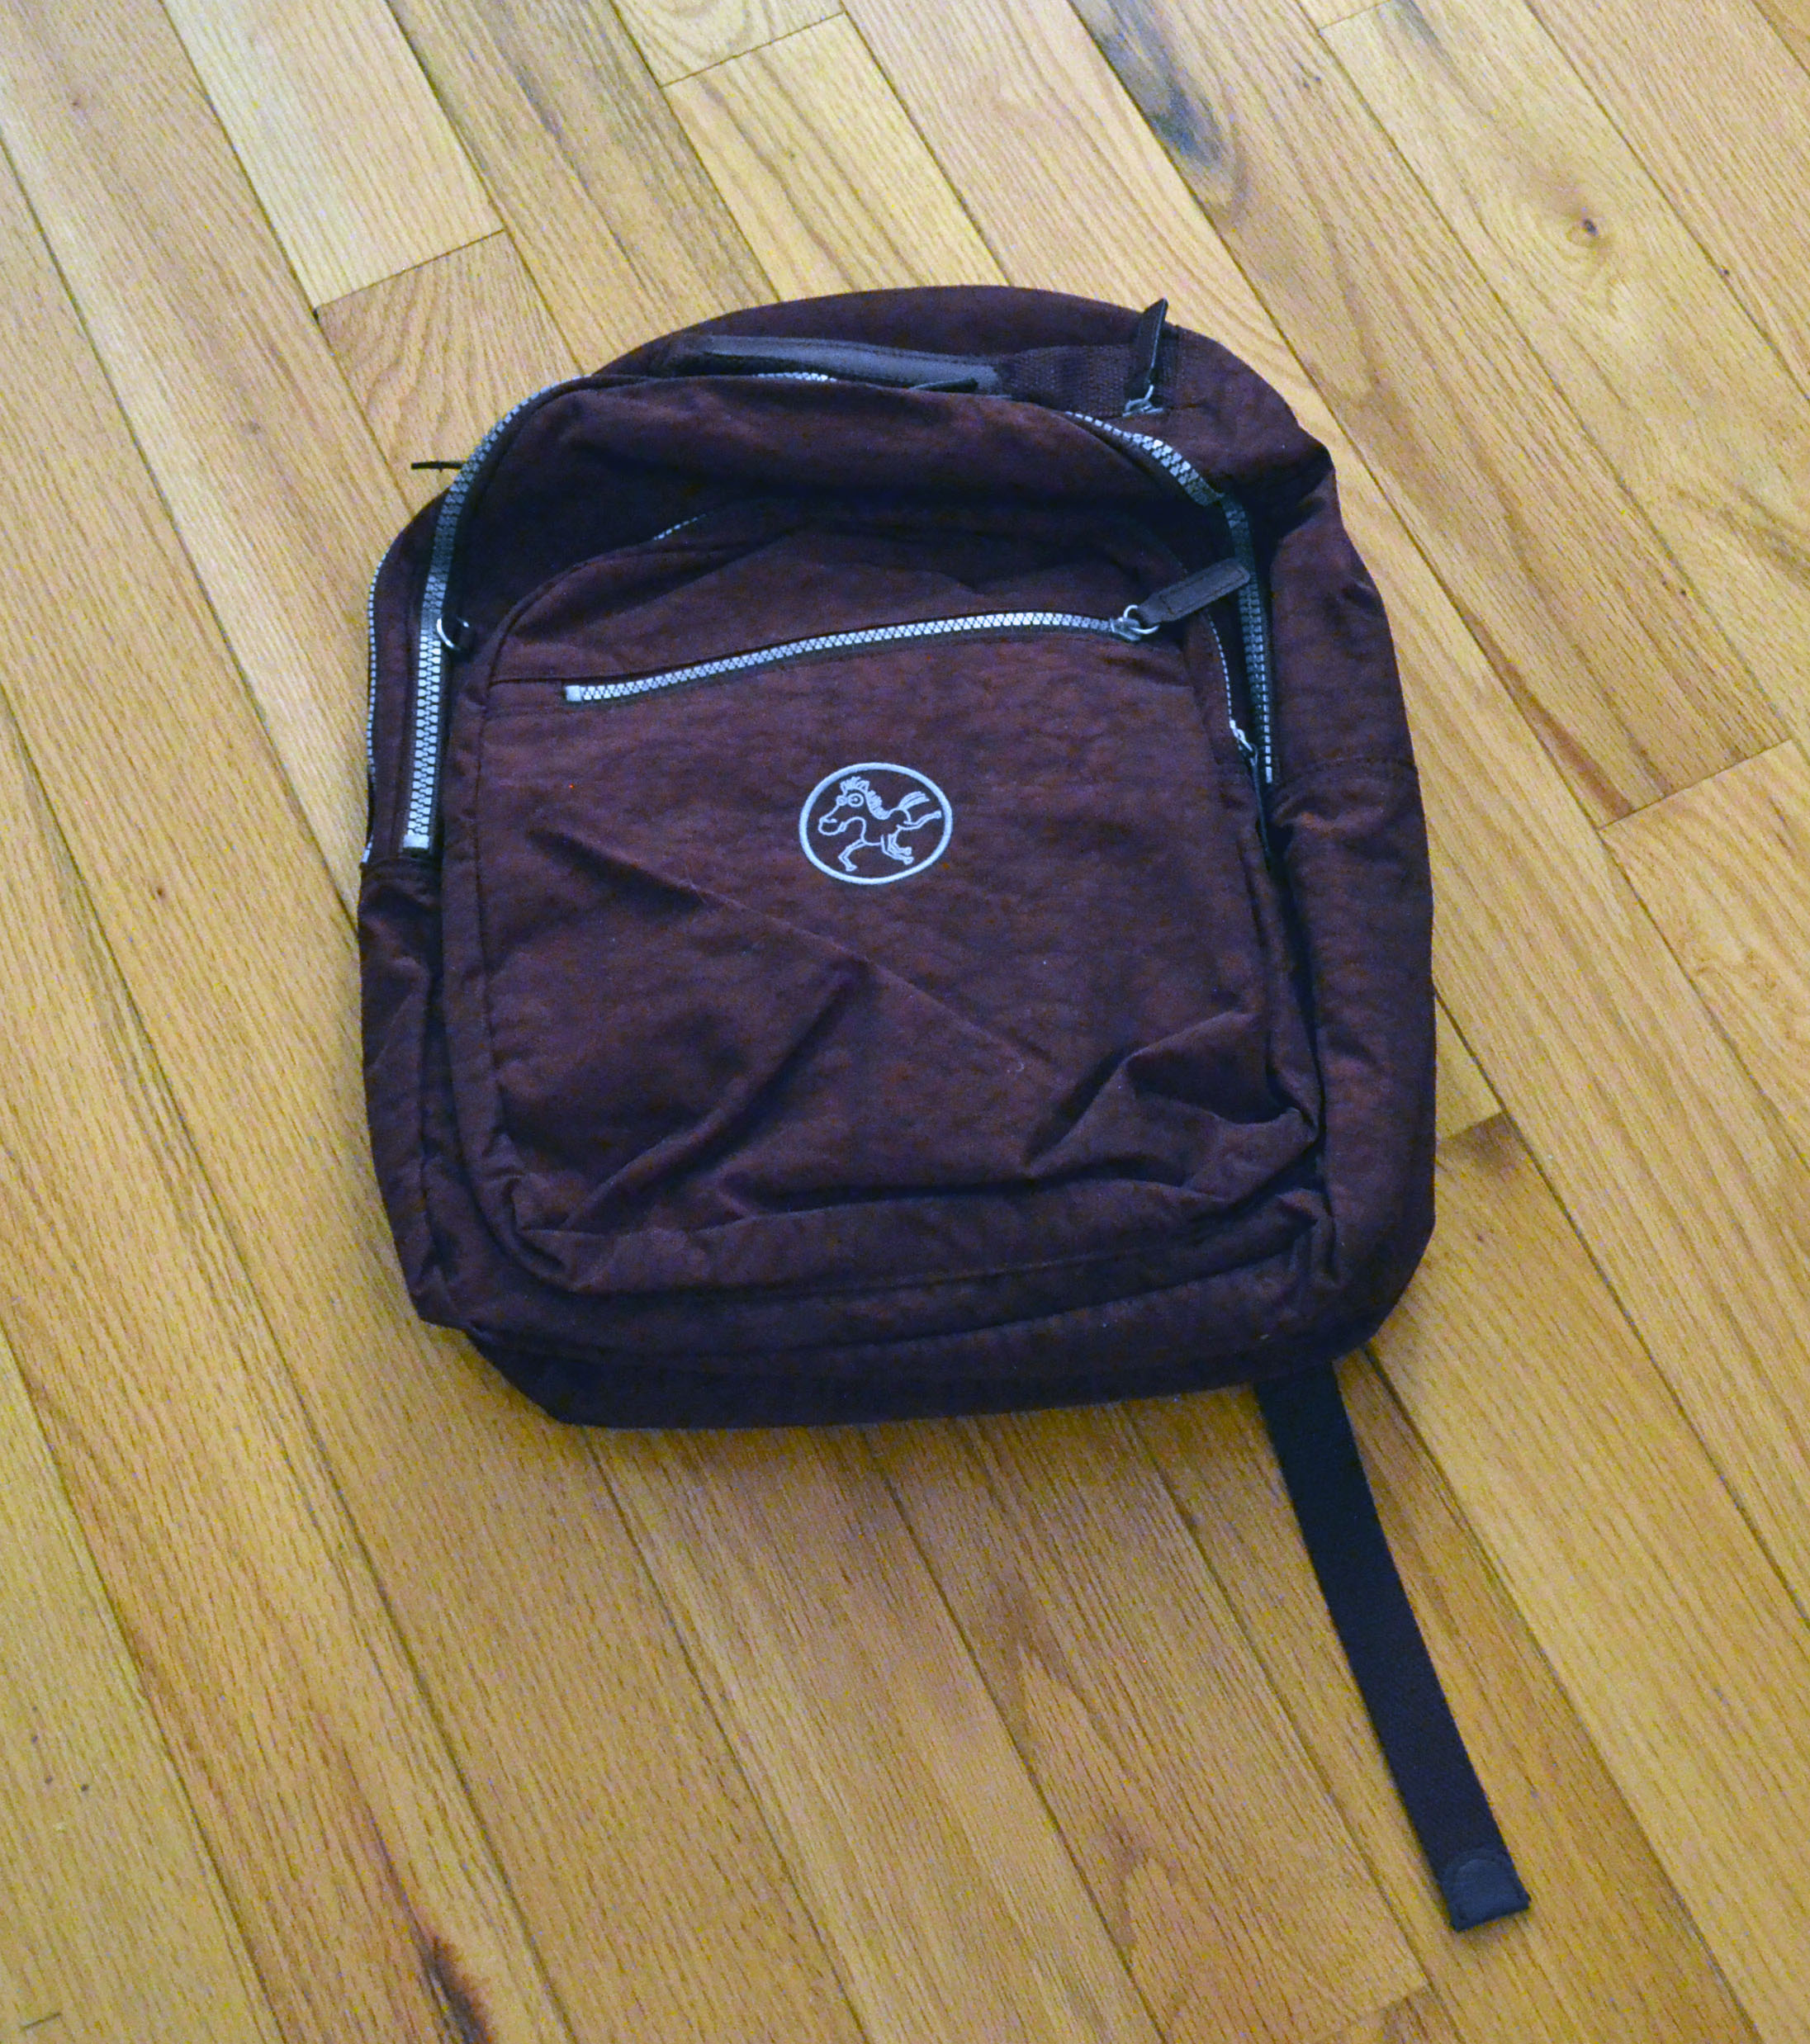 The front of the backpack.